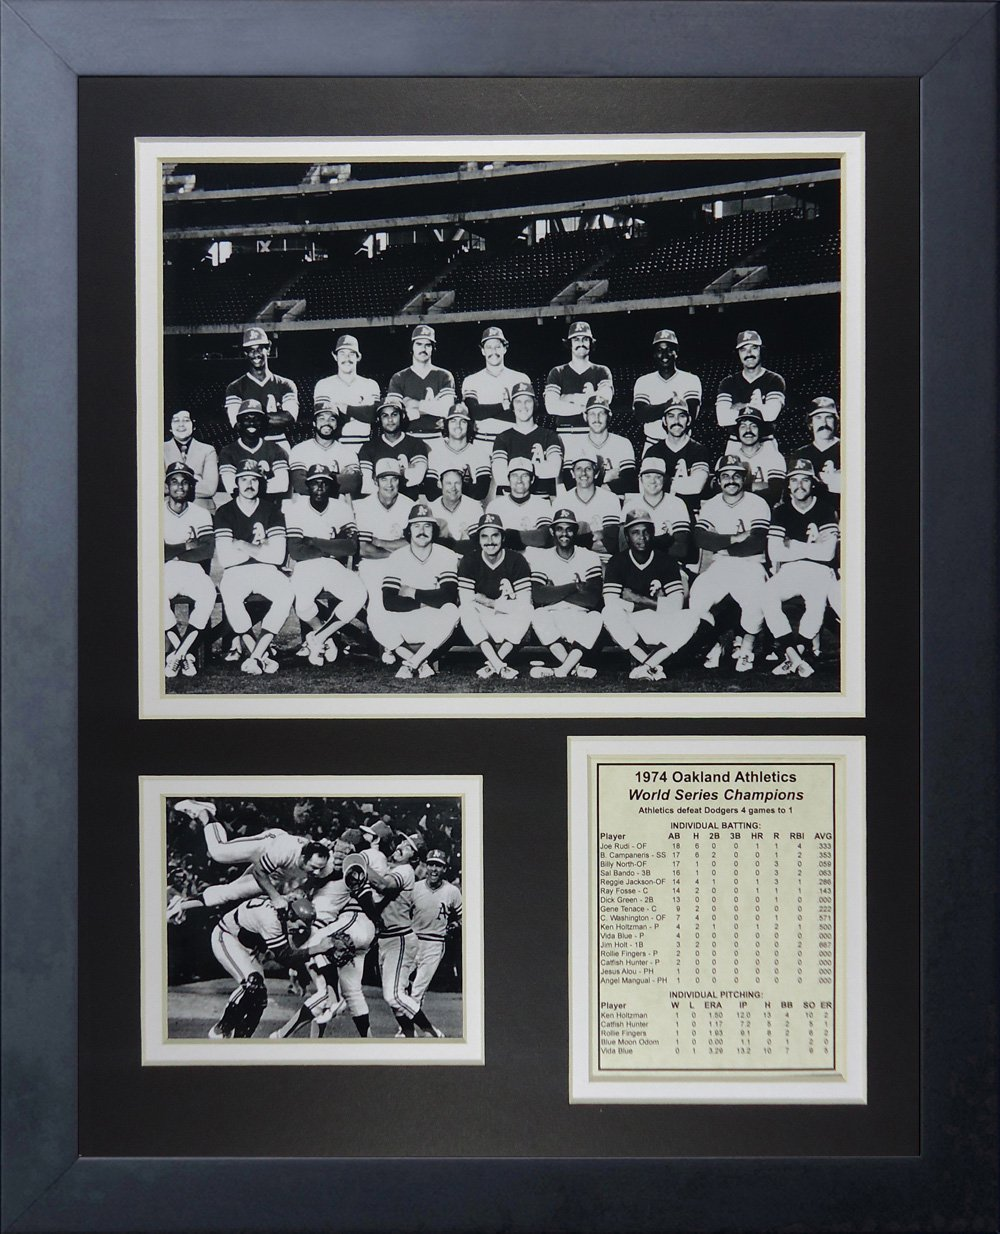 11 x 14-Inch Legends Never Die 1974 Oakland Athletics World Series Champions Framed Photo Collage